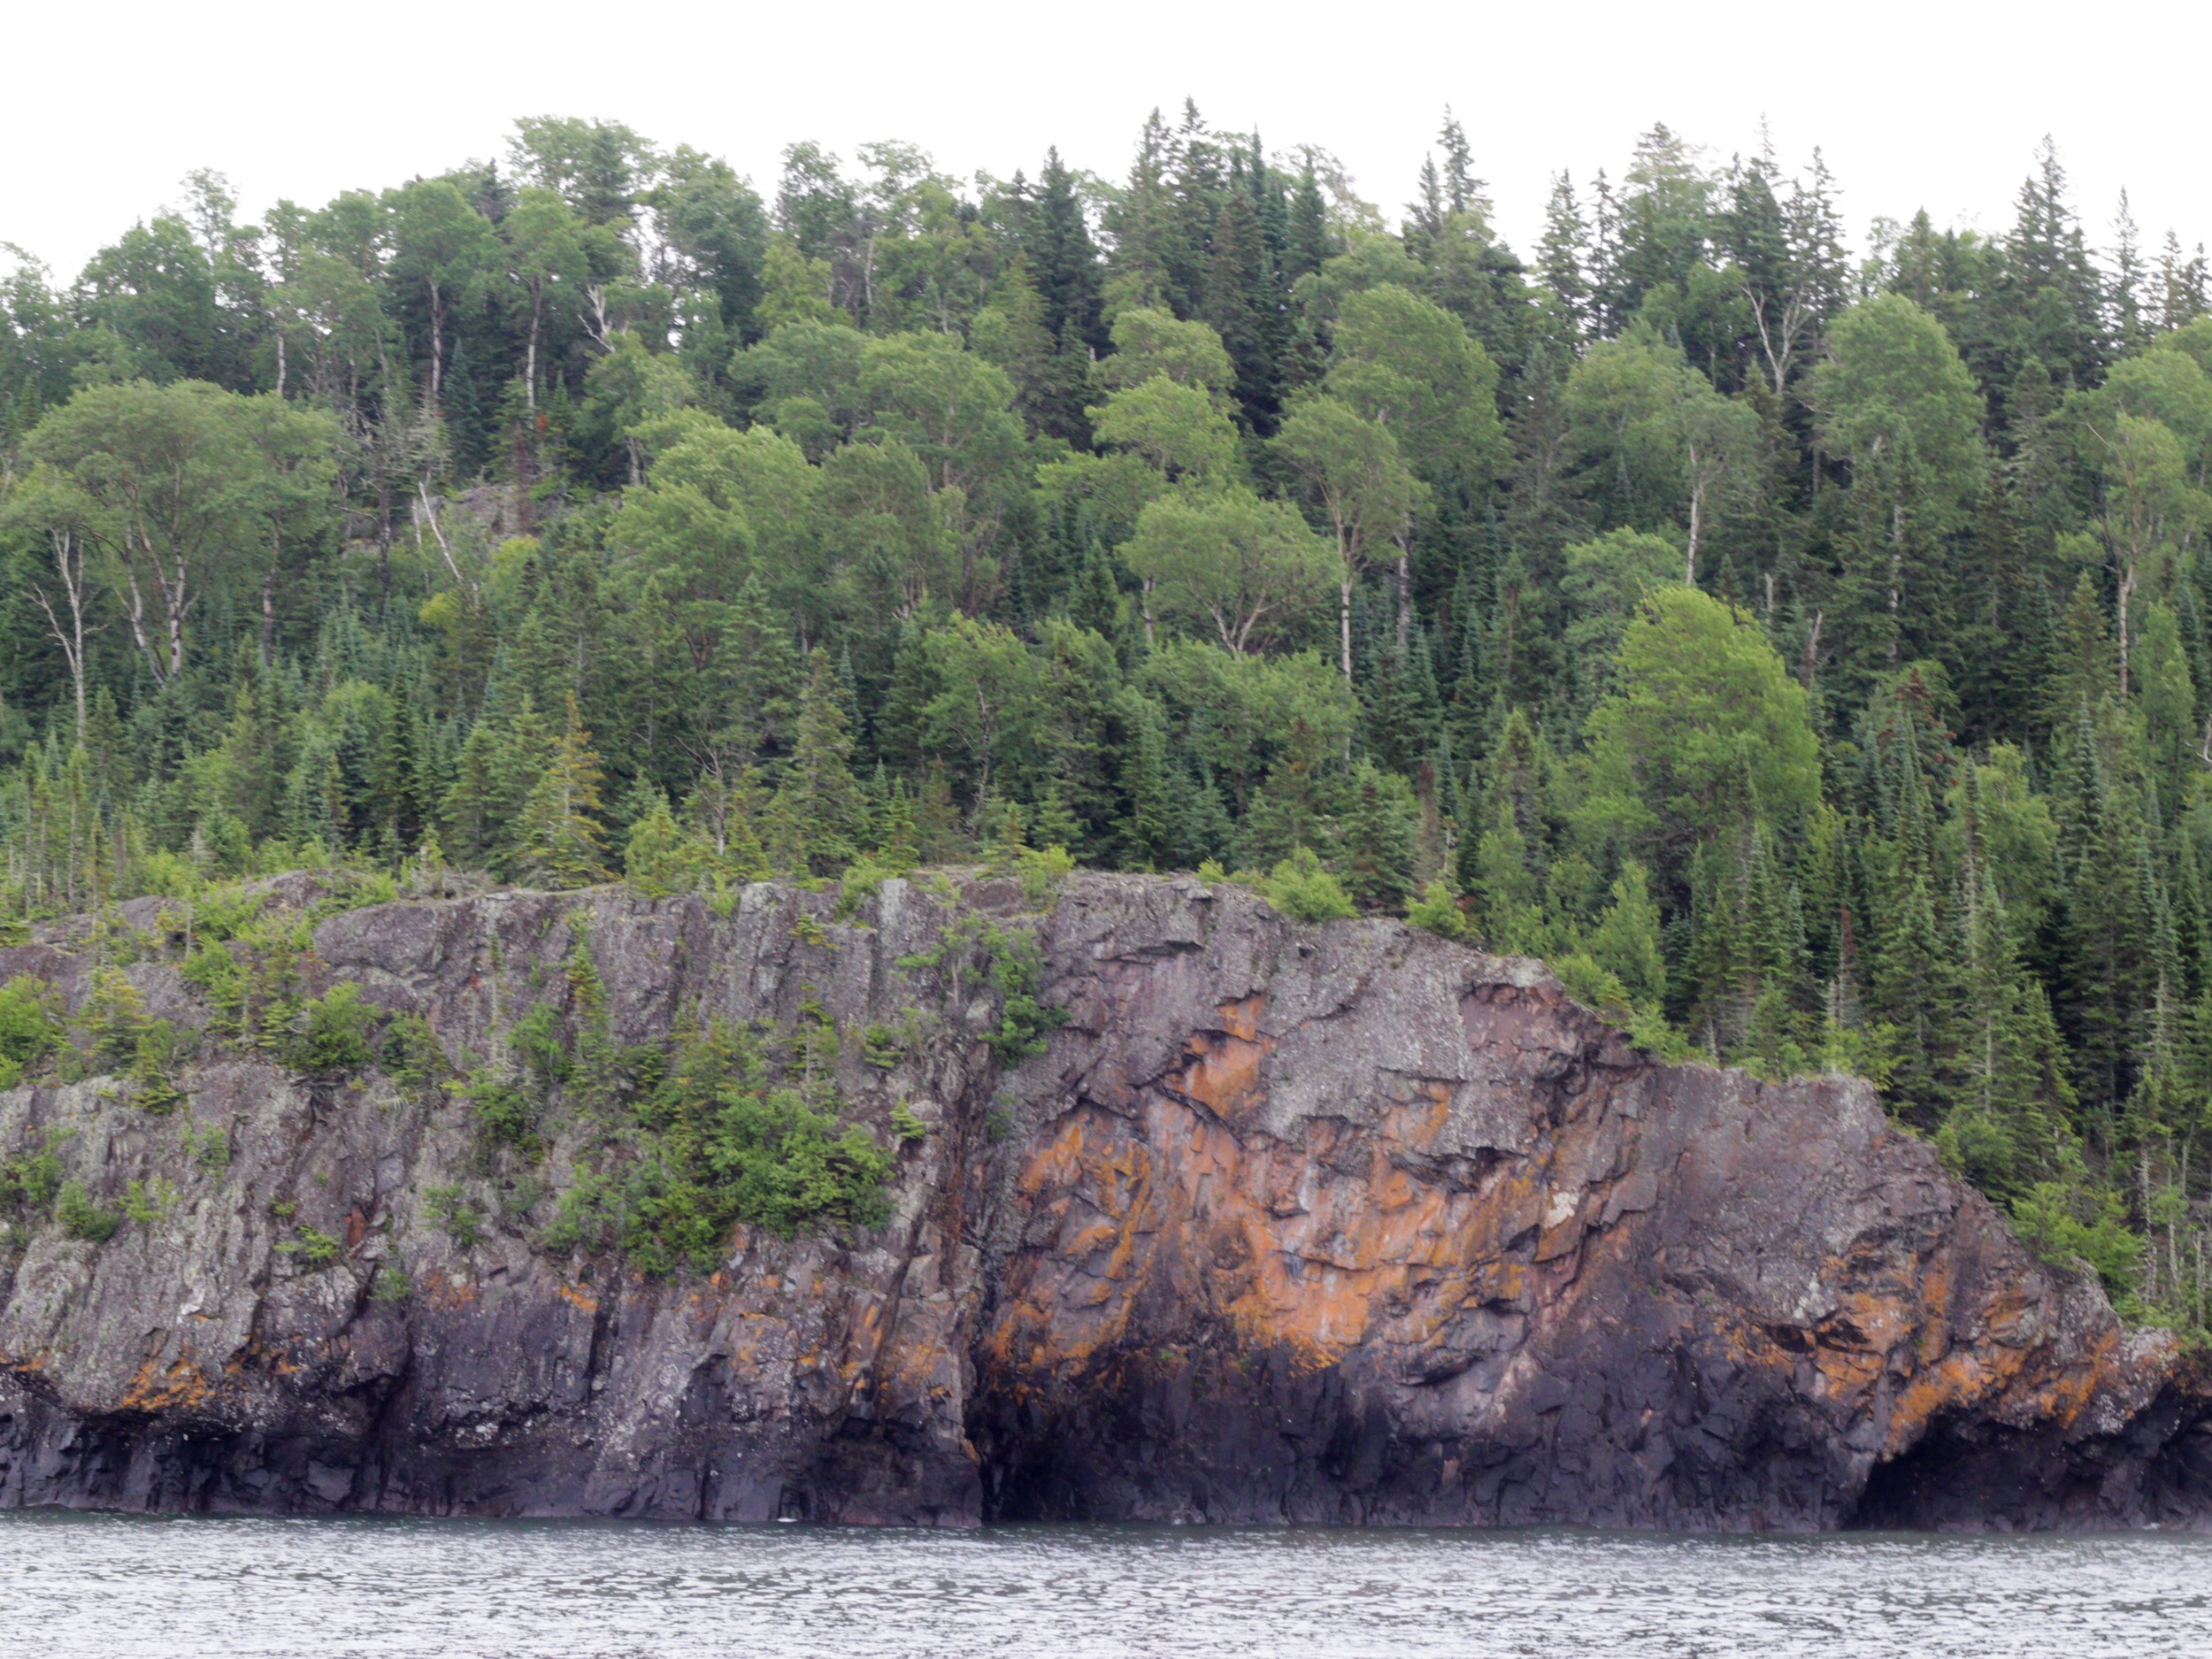 The cliffs that the Monarch crashed into. The crew of the Monarch climbed these cliffs to their safety.